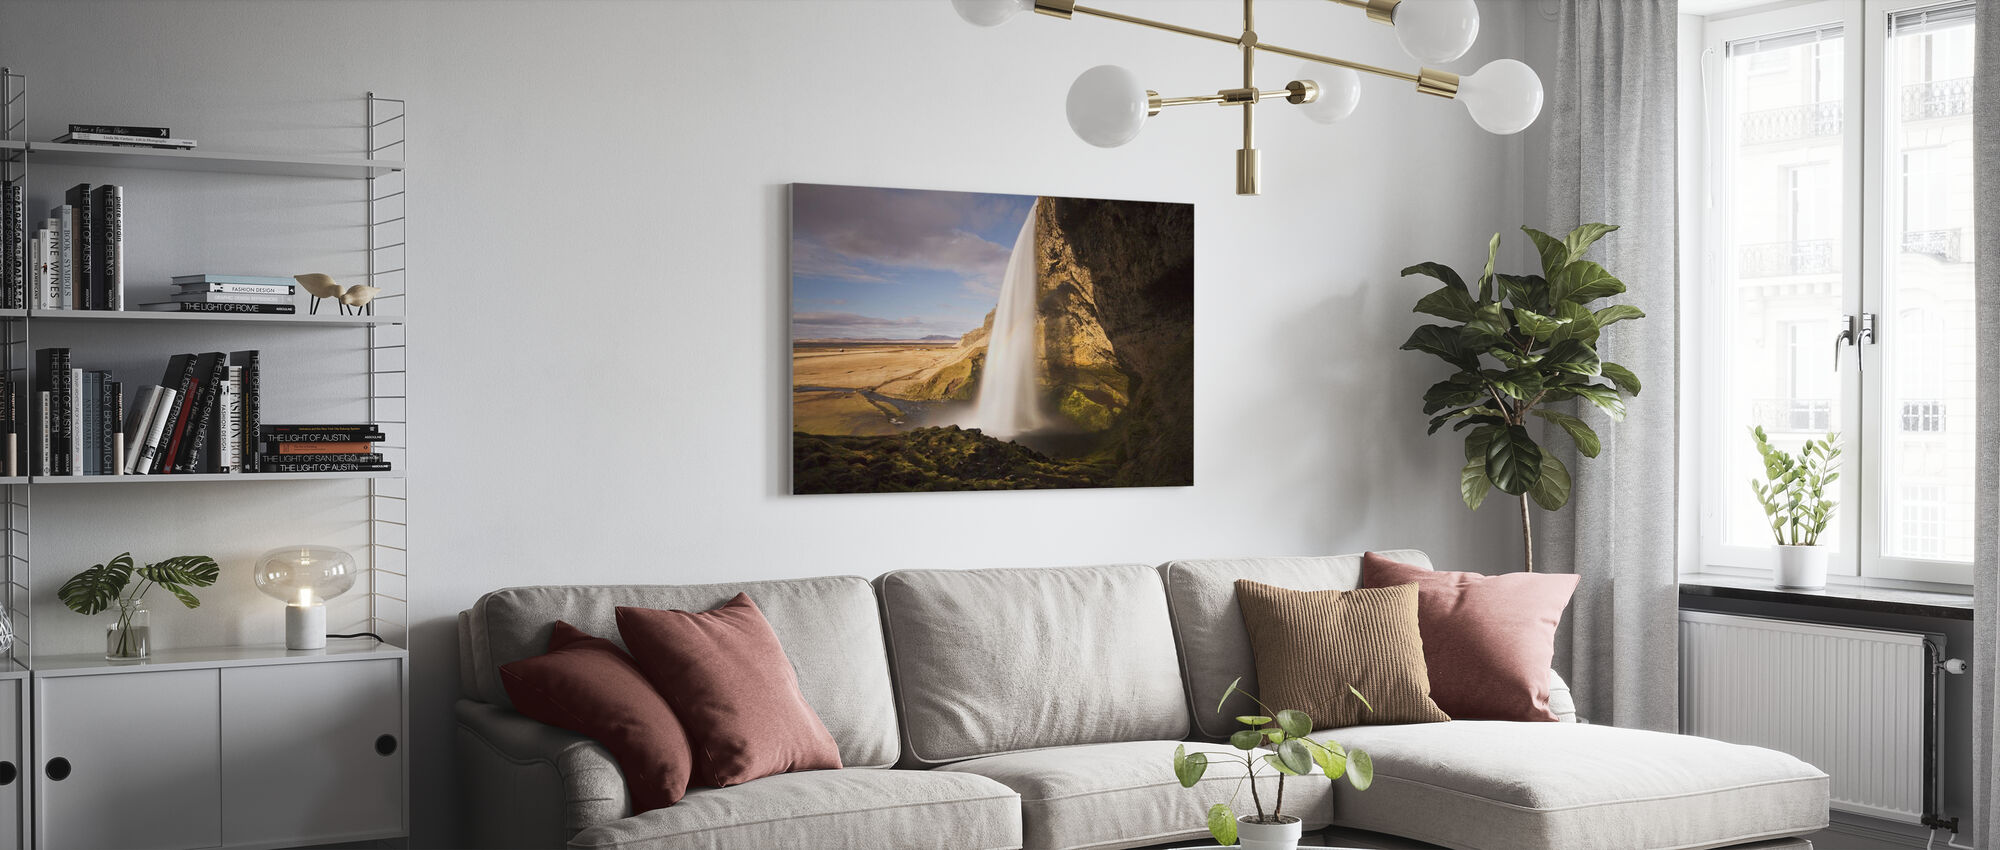 In Safe Distance - Canvas print - Living Room